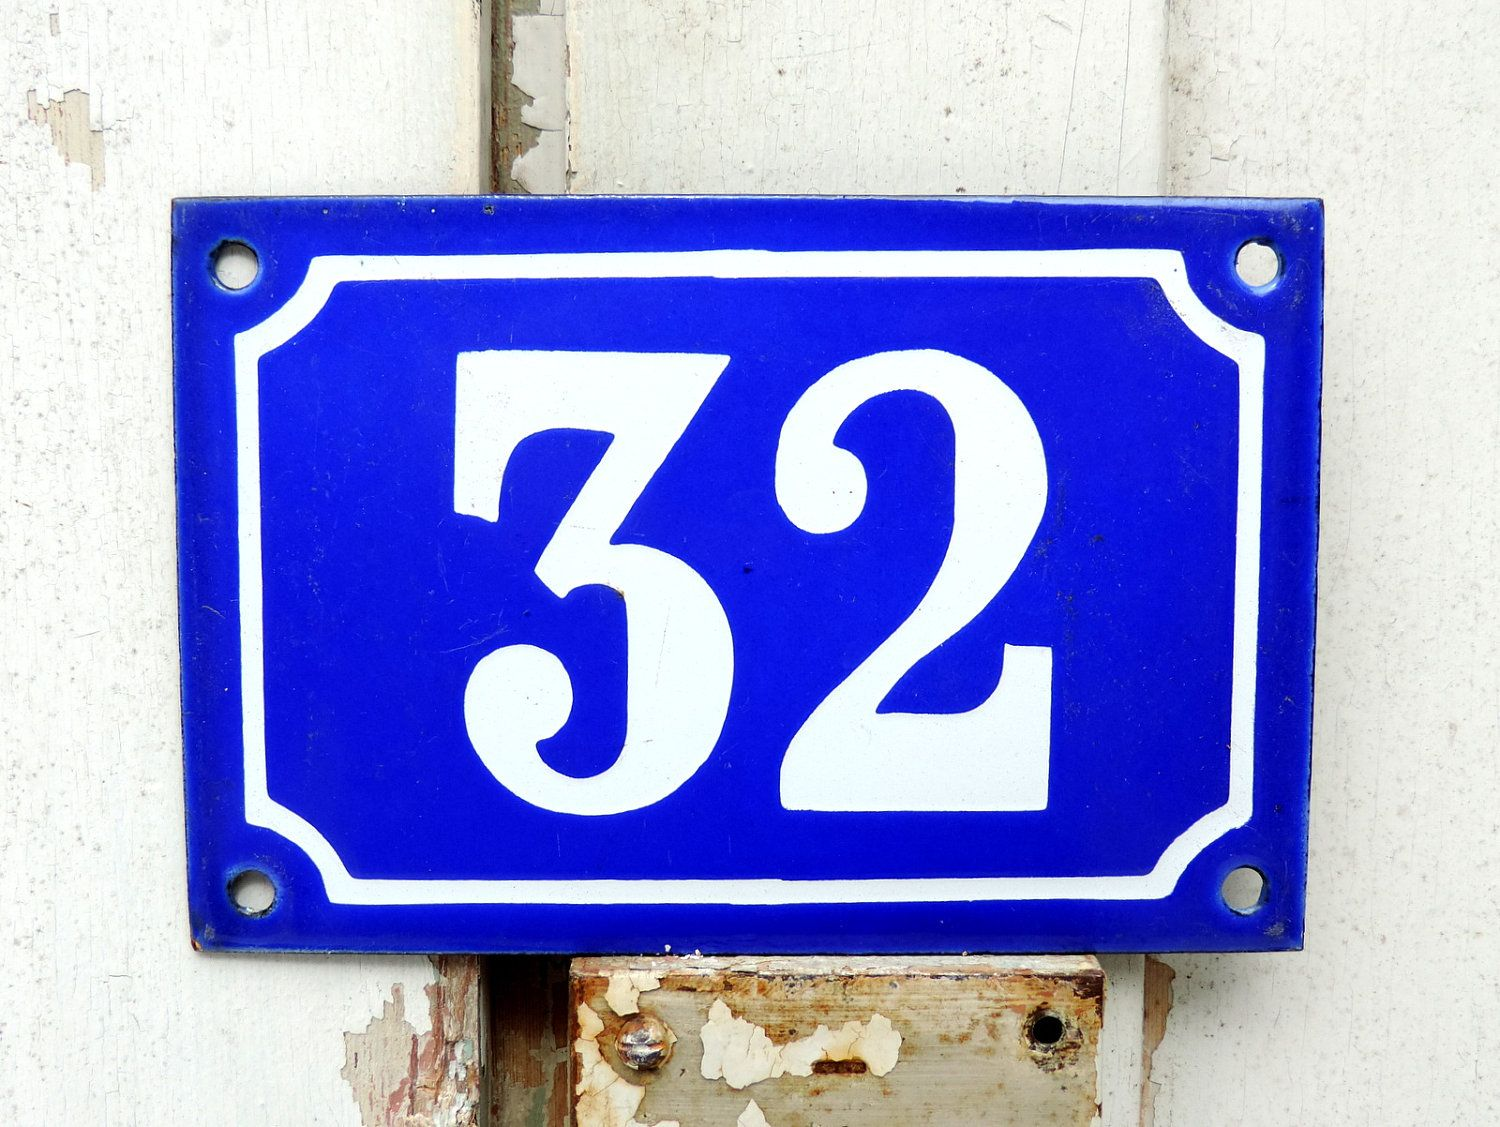 French Vintage Blue And White Enamel House Number Sign French Vintage Number 32 House Plaque French House Numb House Plaques French Vintage House Number Plaque